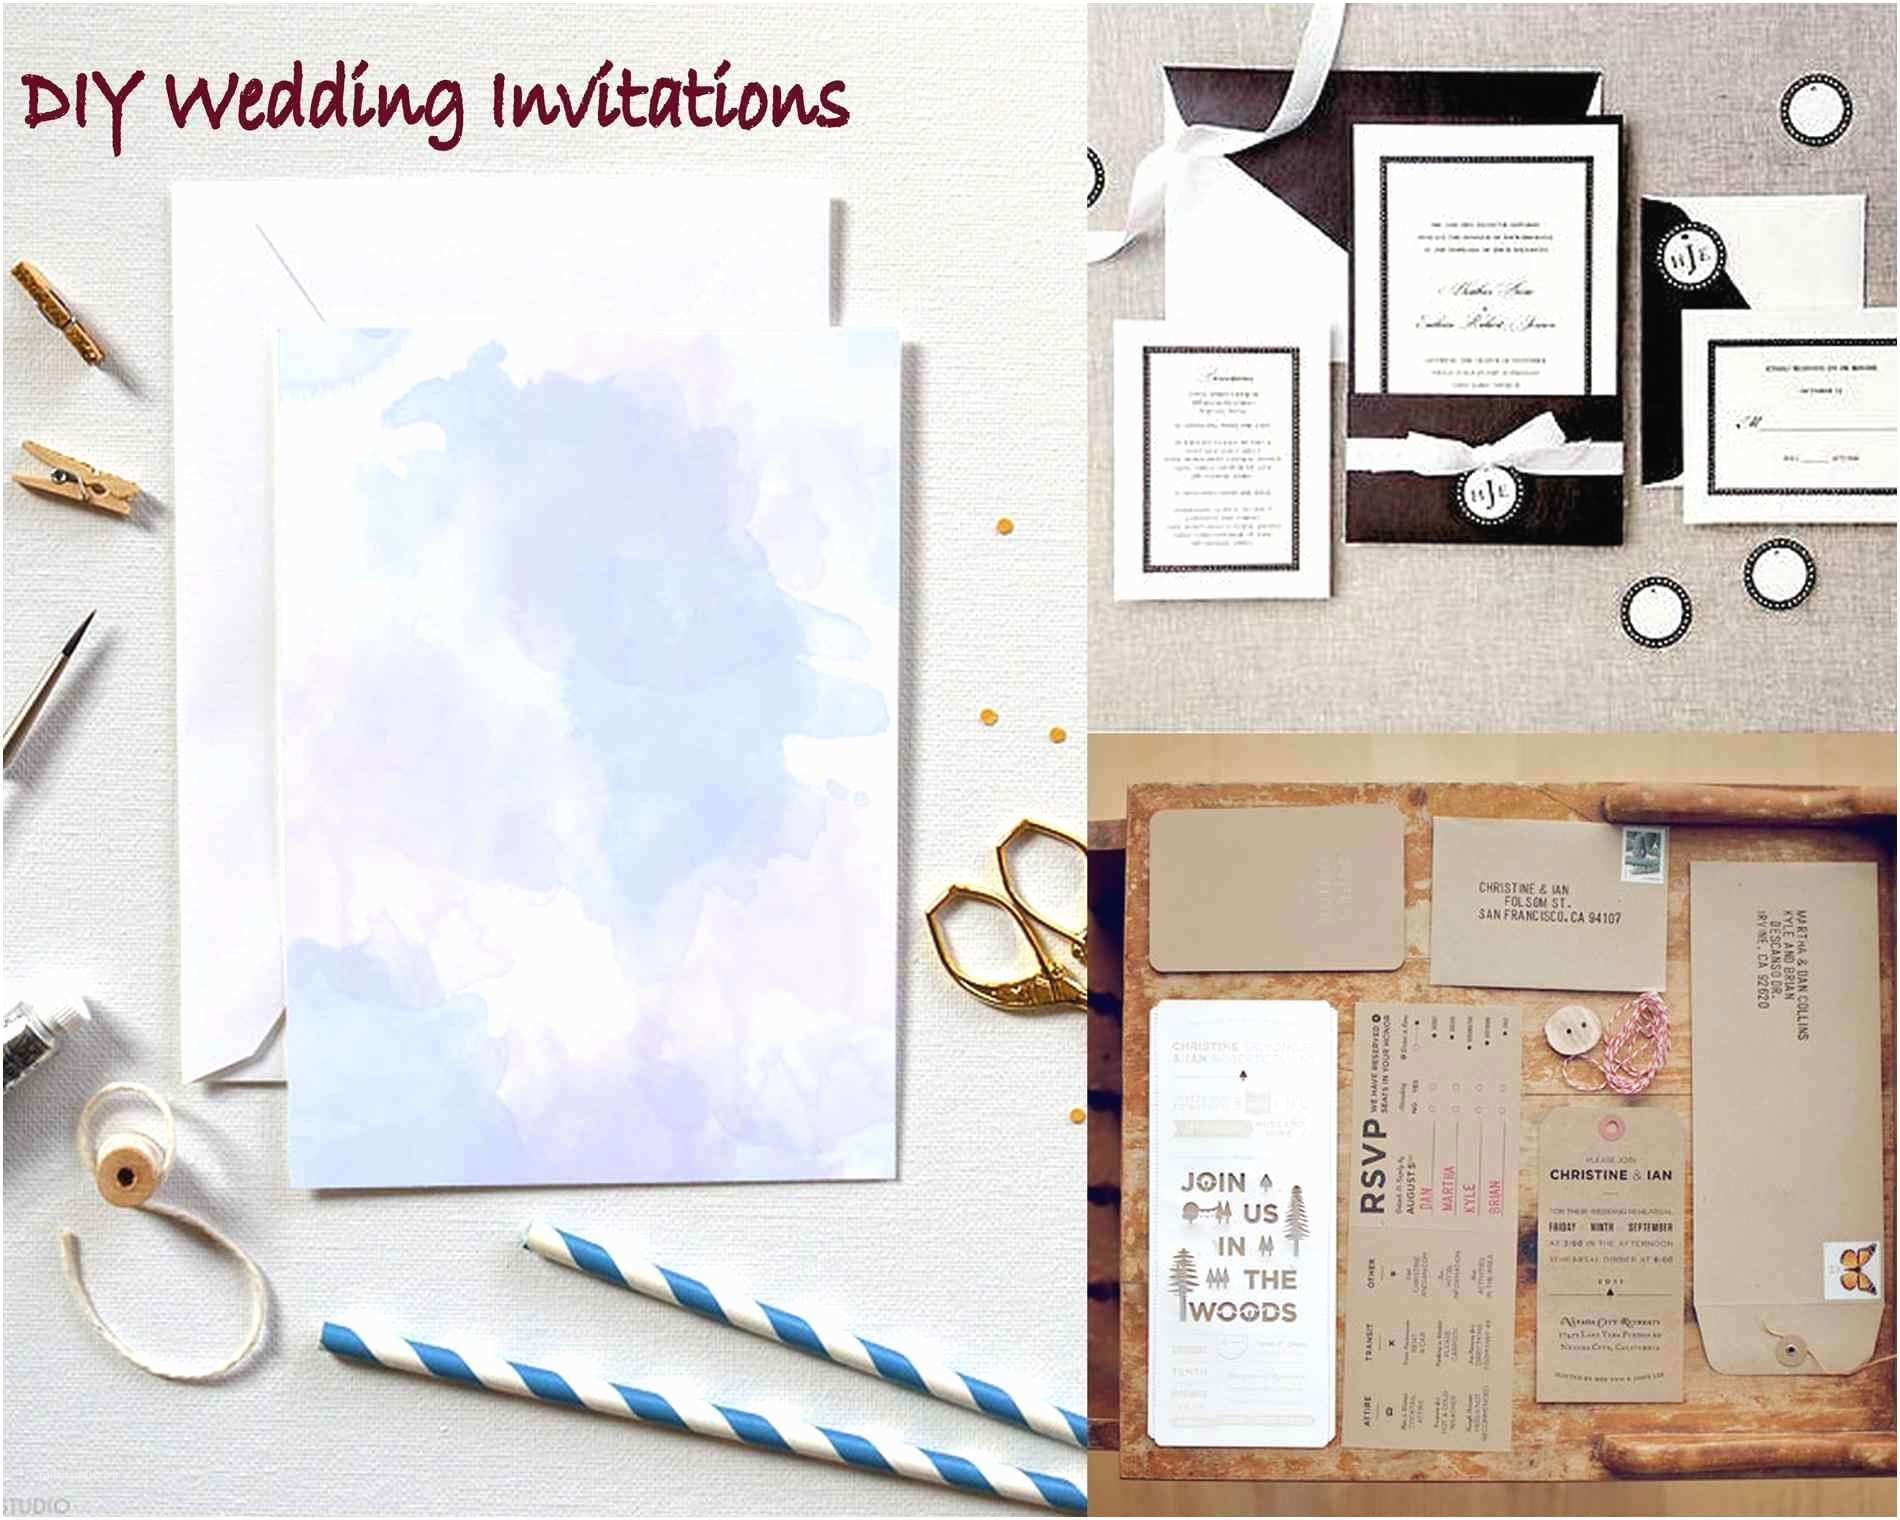 Cheap Wedding Invitations Walmart S Fresh Walmart Kit today Dresses Diy Wedding Invi and What Should Wedding Invitation Say Kits